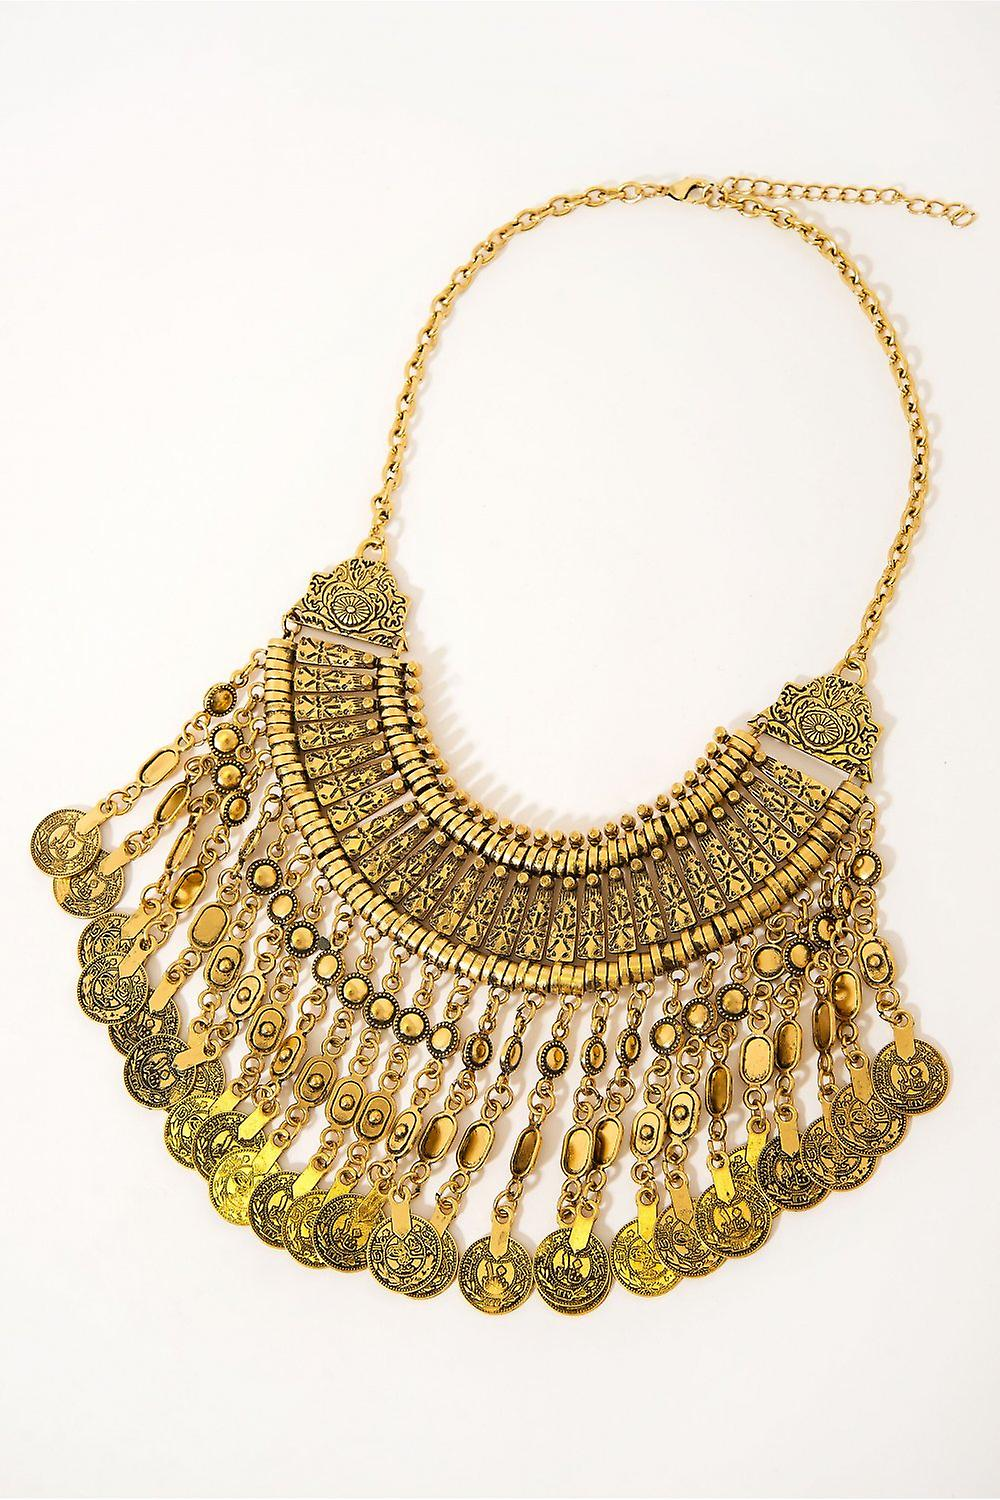 Vintage Style Coin Necklace